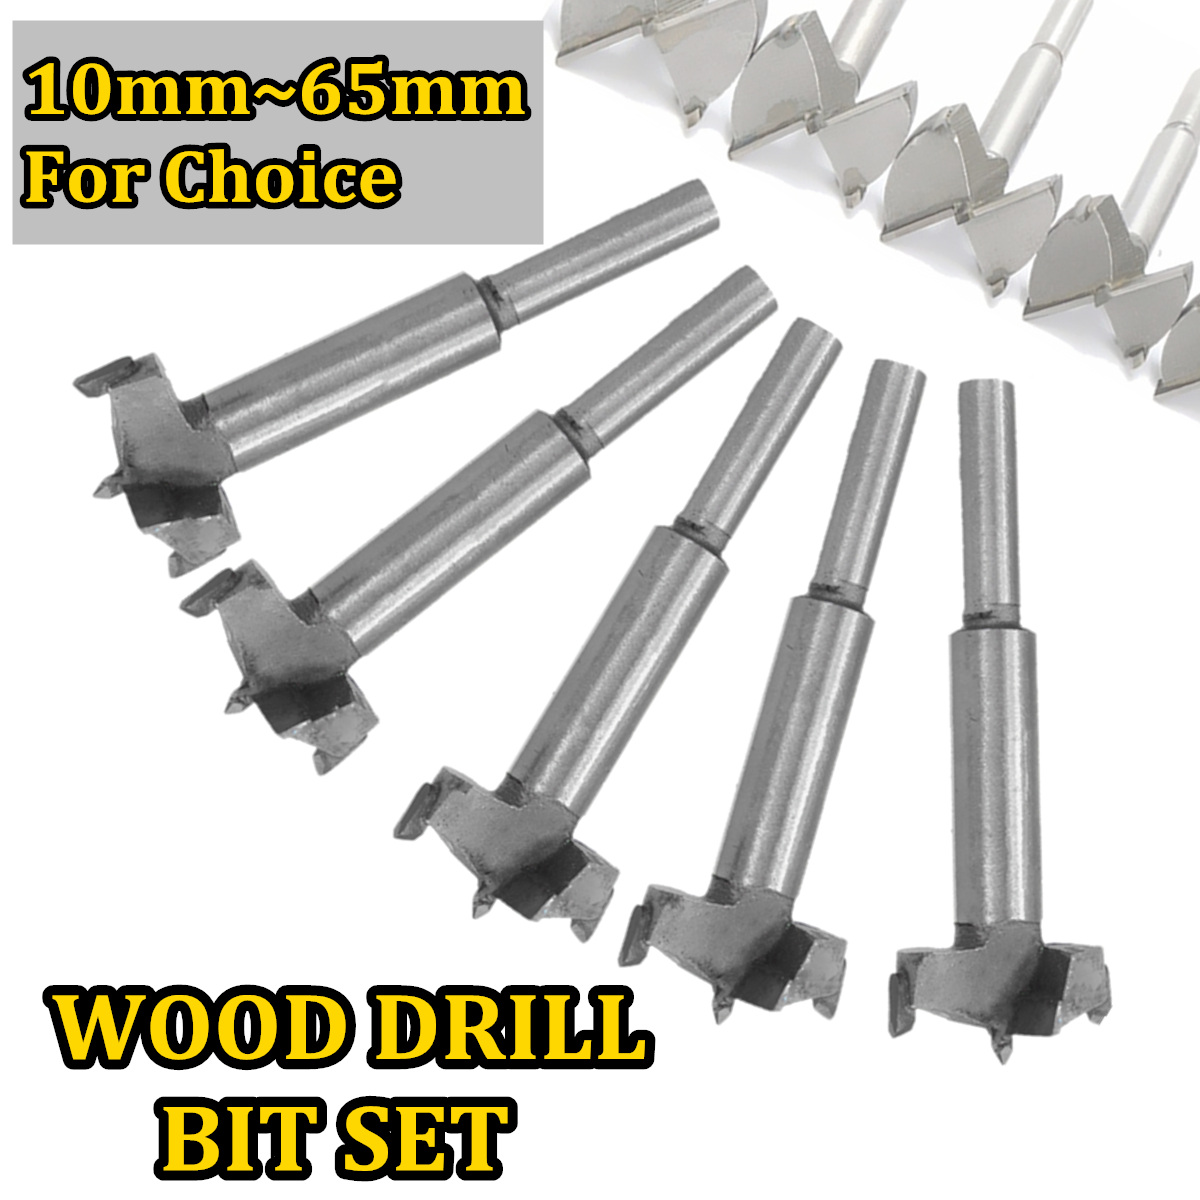 1pcs Forstner Wood Drill Bit Self Centering Hole Saw Cutter Woodworking Tools Set 14mm-65mm Hinge Forstner Drill Bits